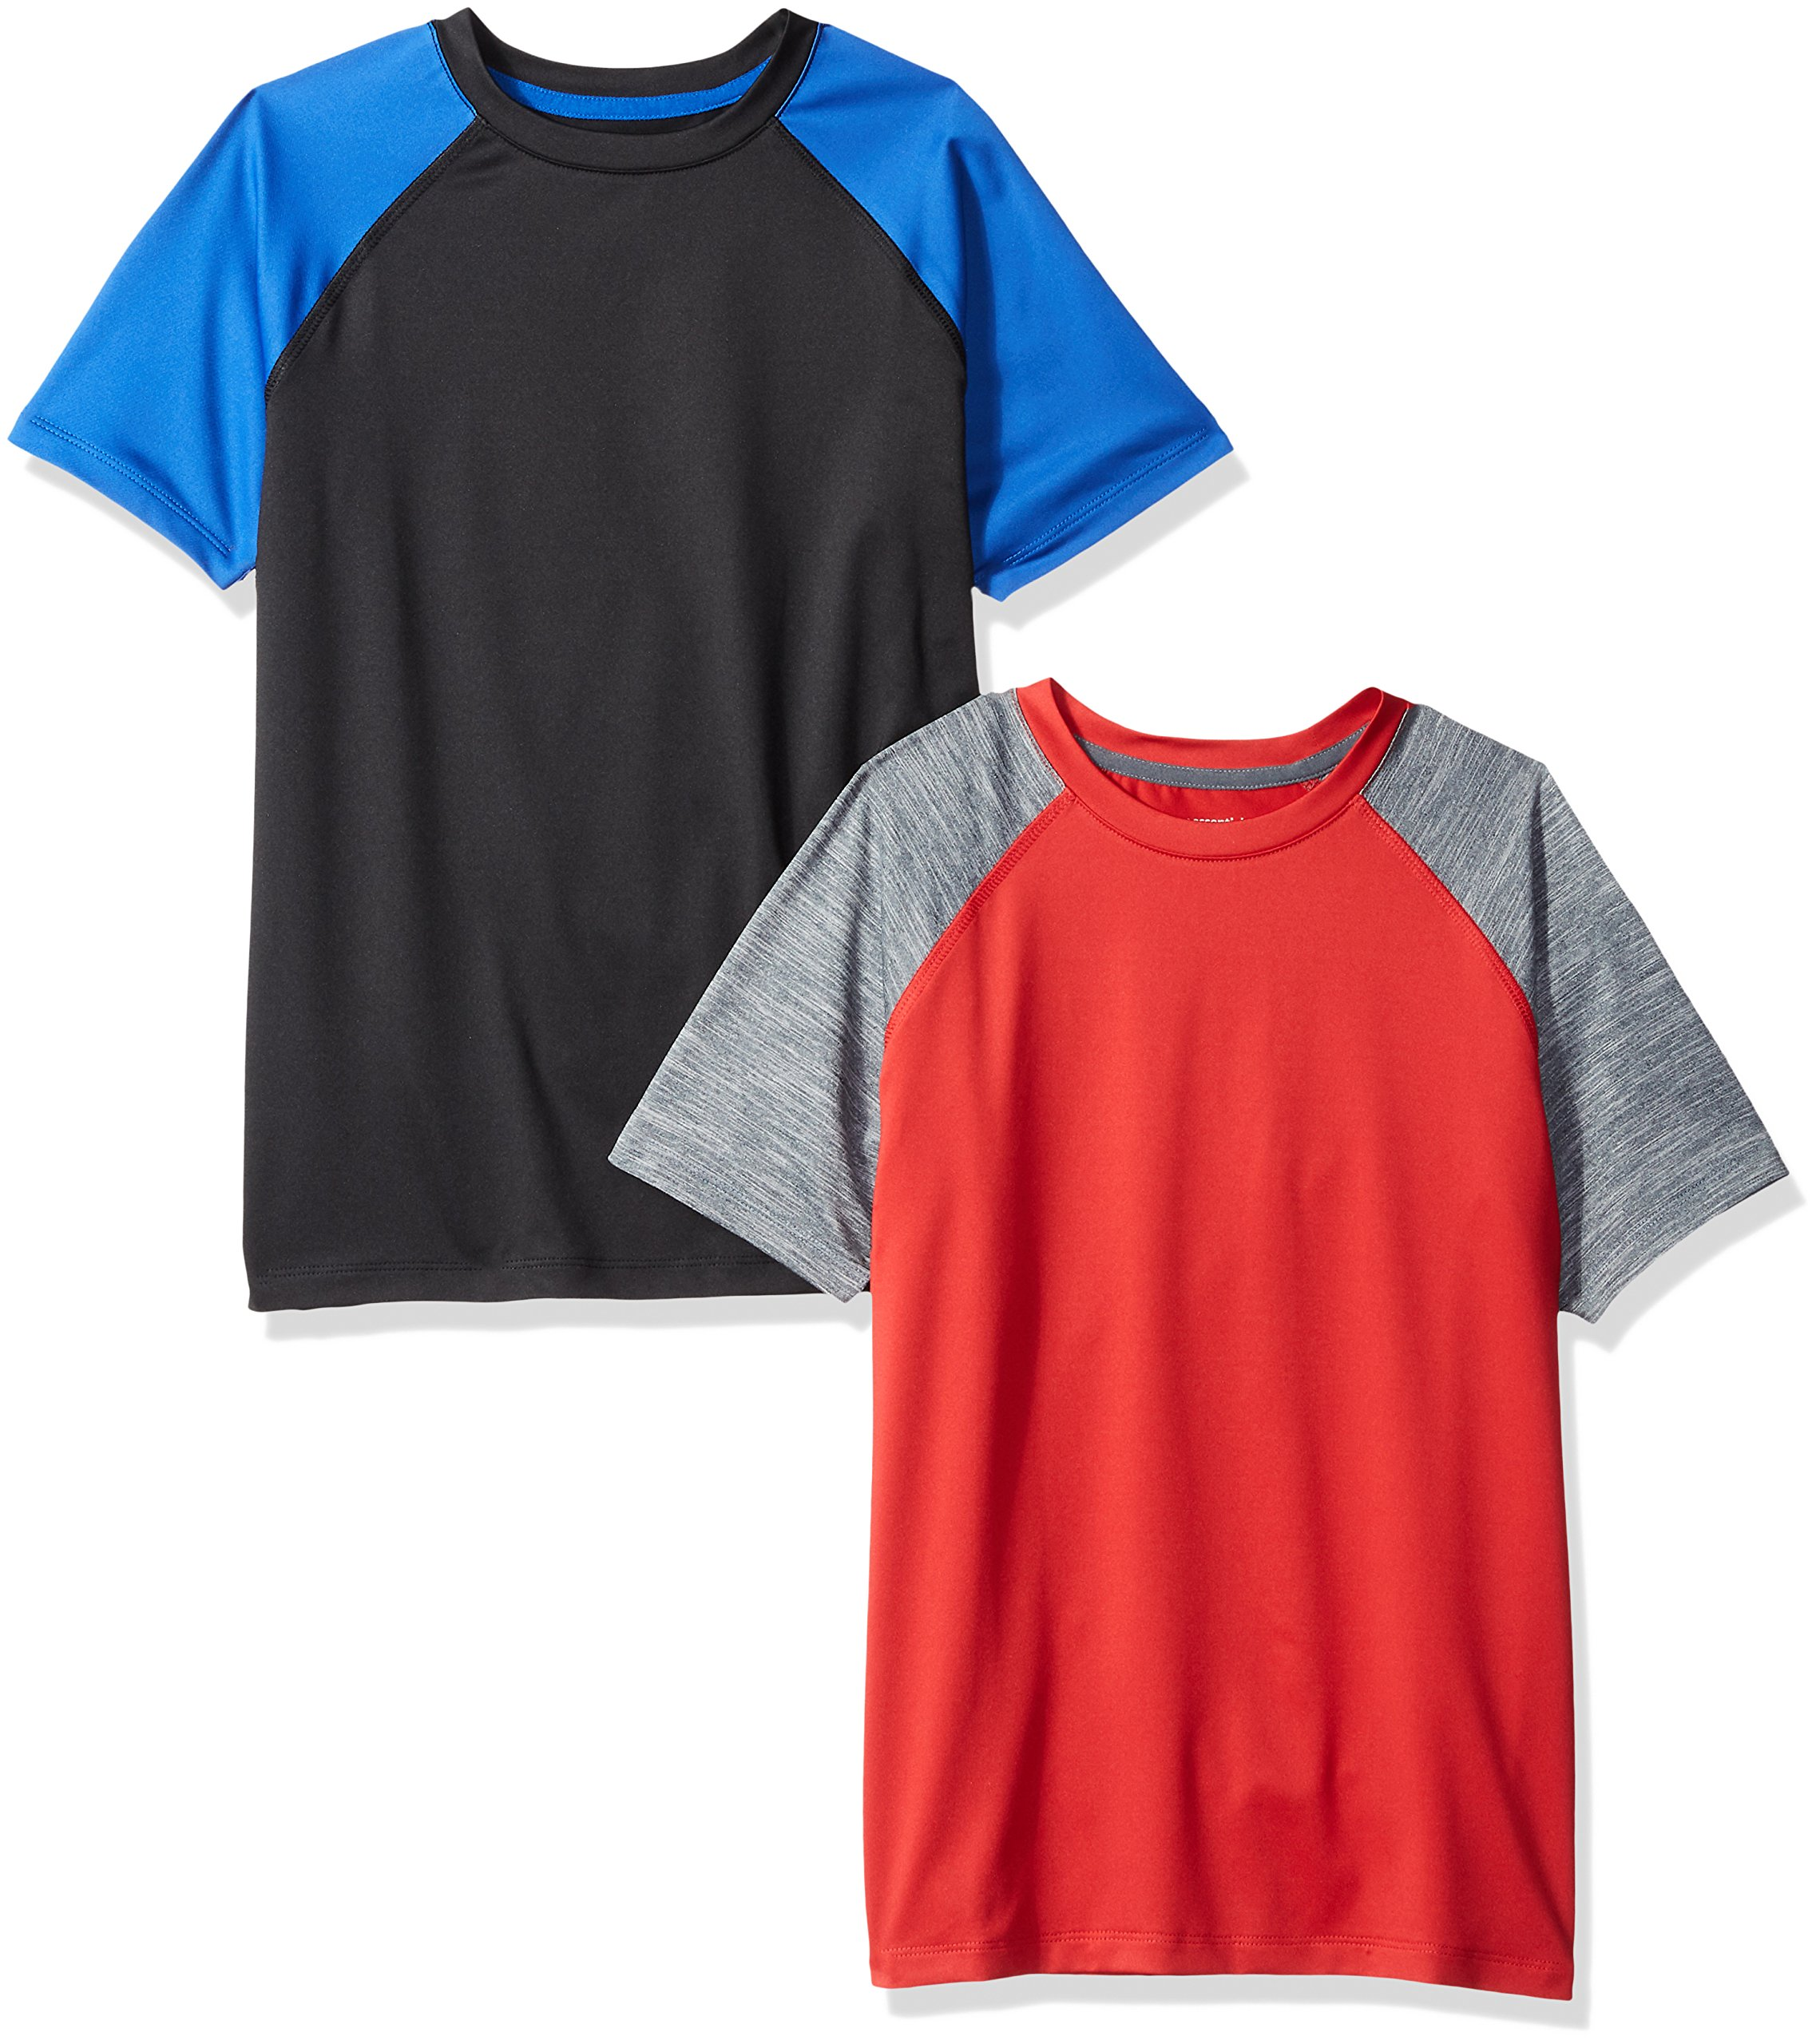 Amazon Essentials Boys' 2-Pack Short-Sleeve Raglan Active Tee, Black/Royal Blue/Grey/Red, Small